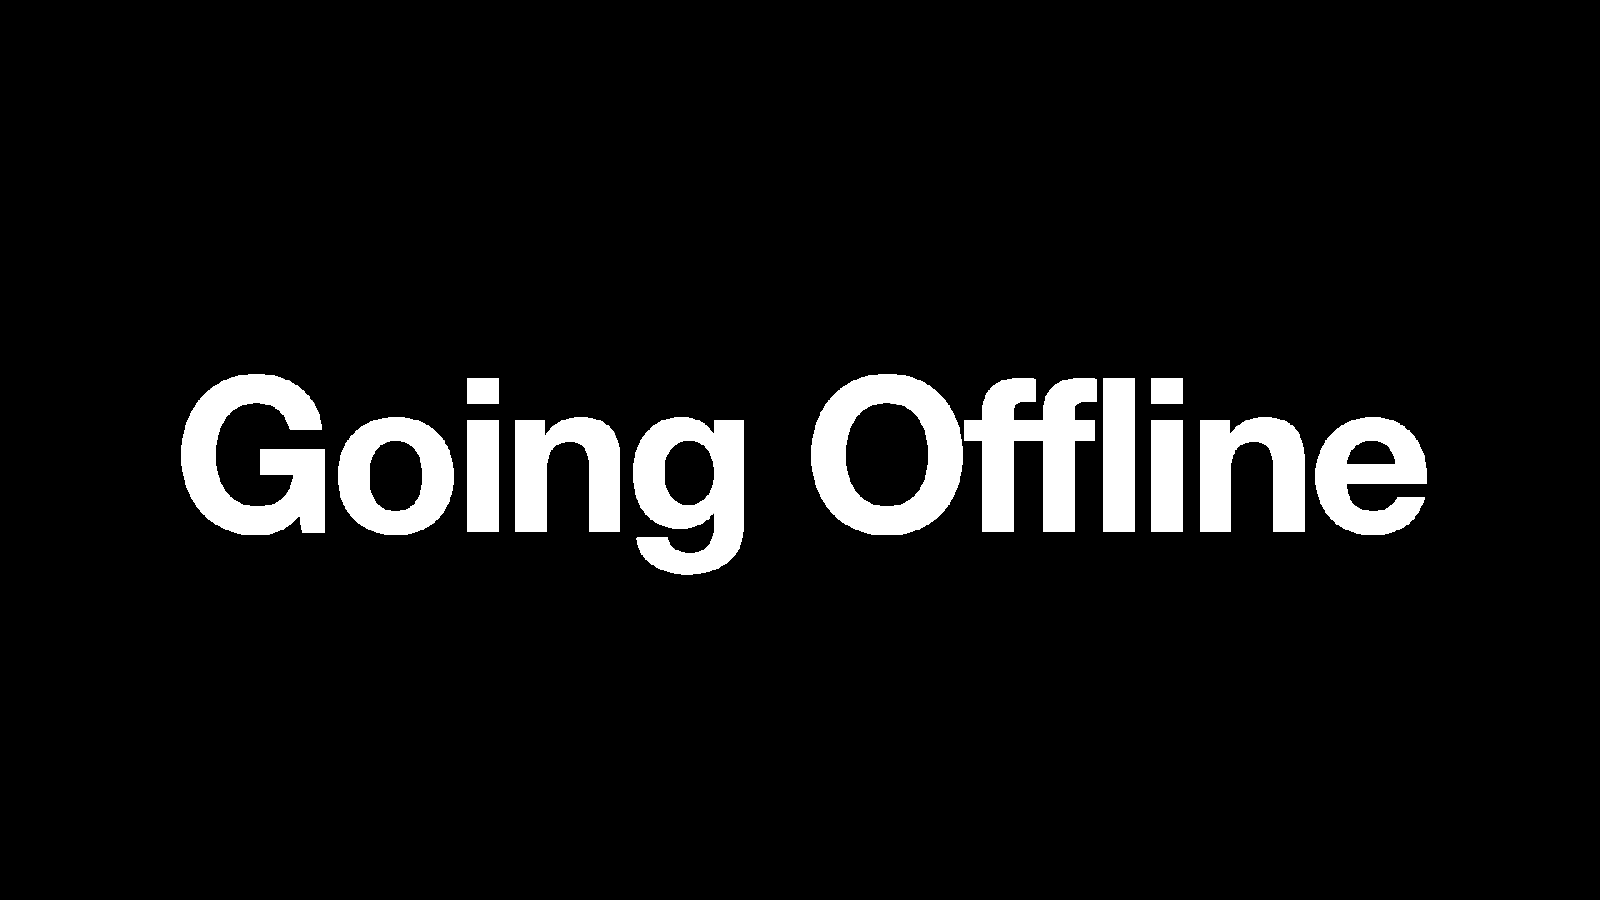 Going Offline